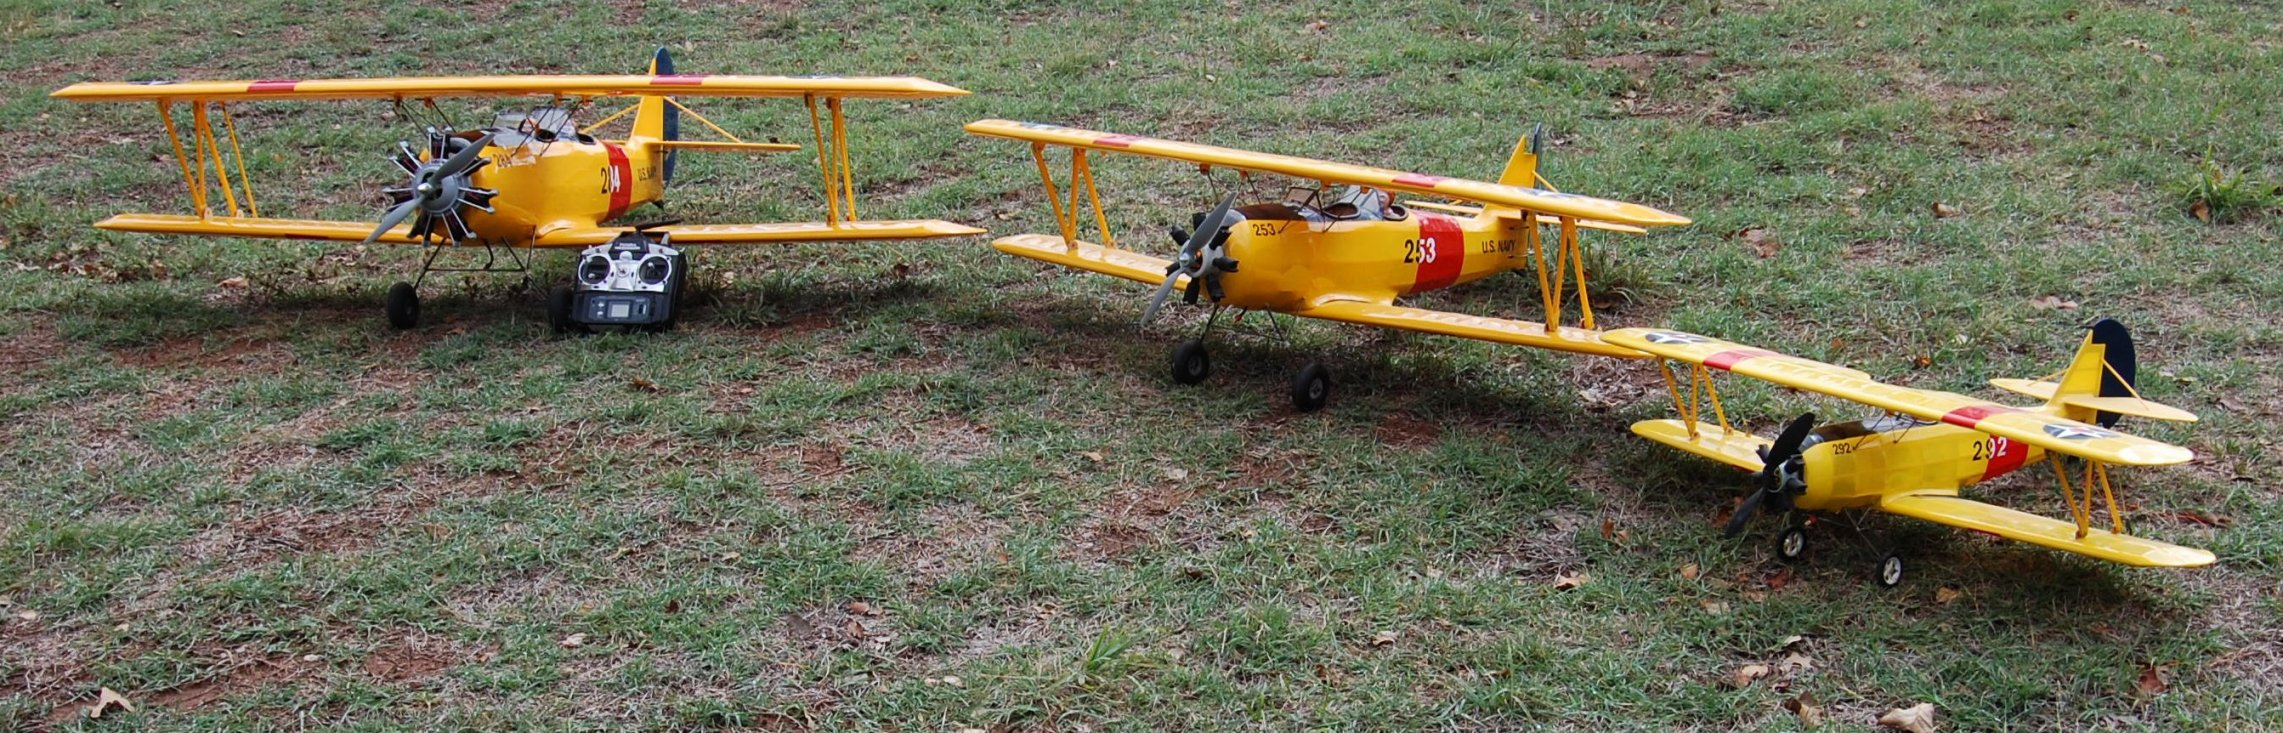 RC Plans and Models | The N3N Blog – it's